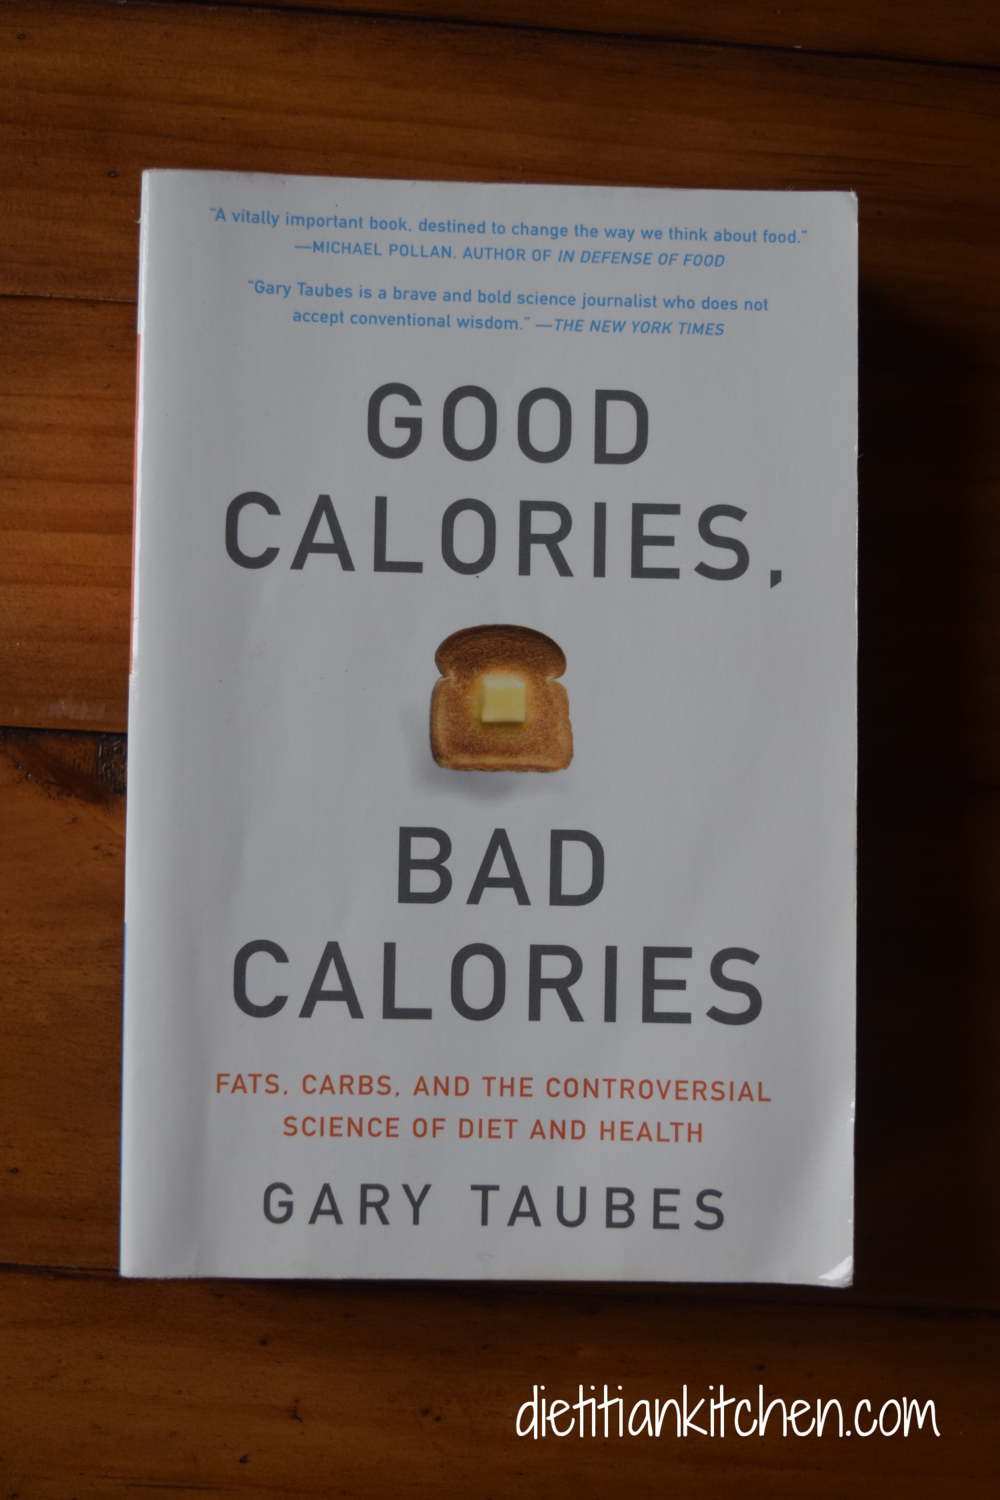 What an eye-opening read. Gary Taubes outlines how each decade past has led us to change what we eat and how it's unfortunately led us to our current health crisis.